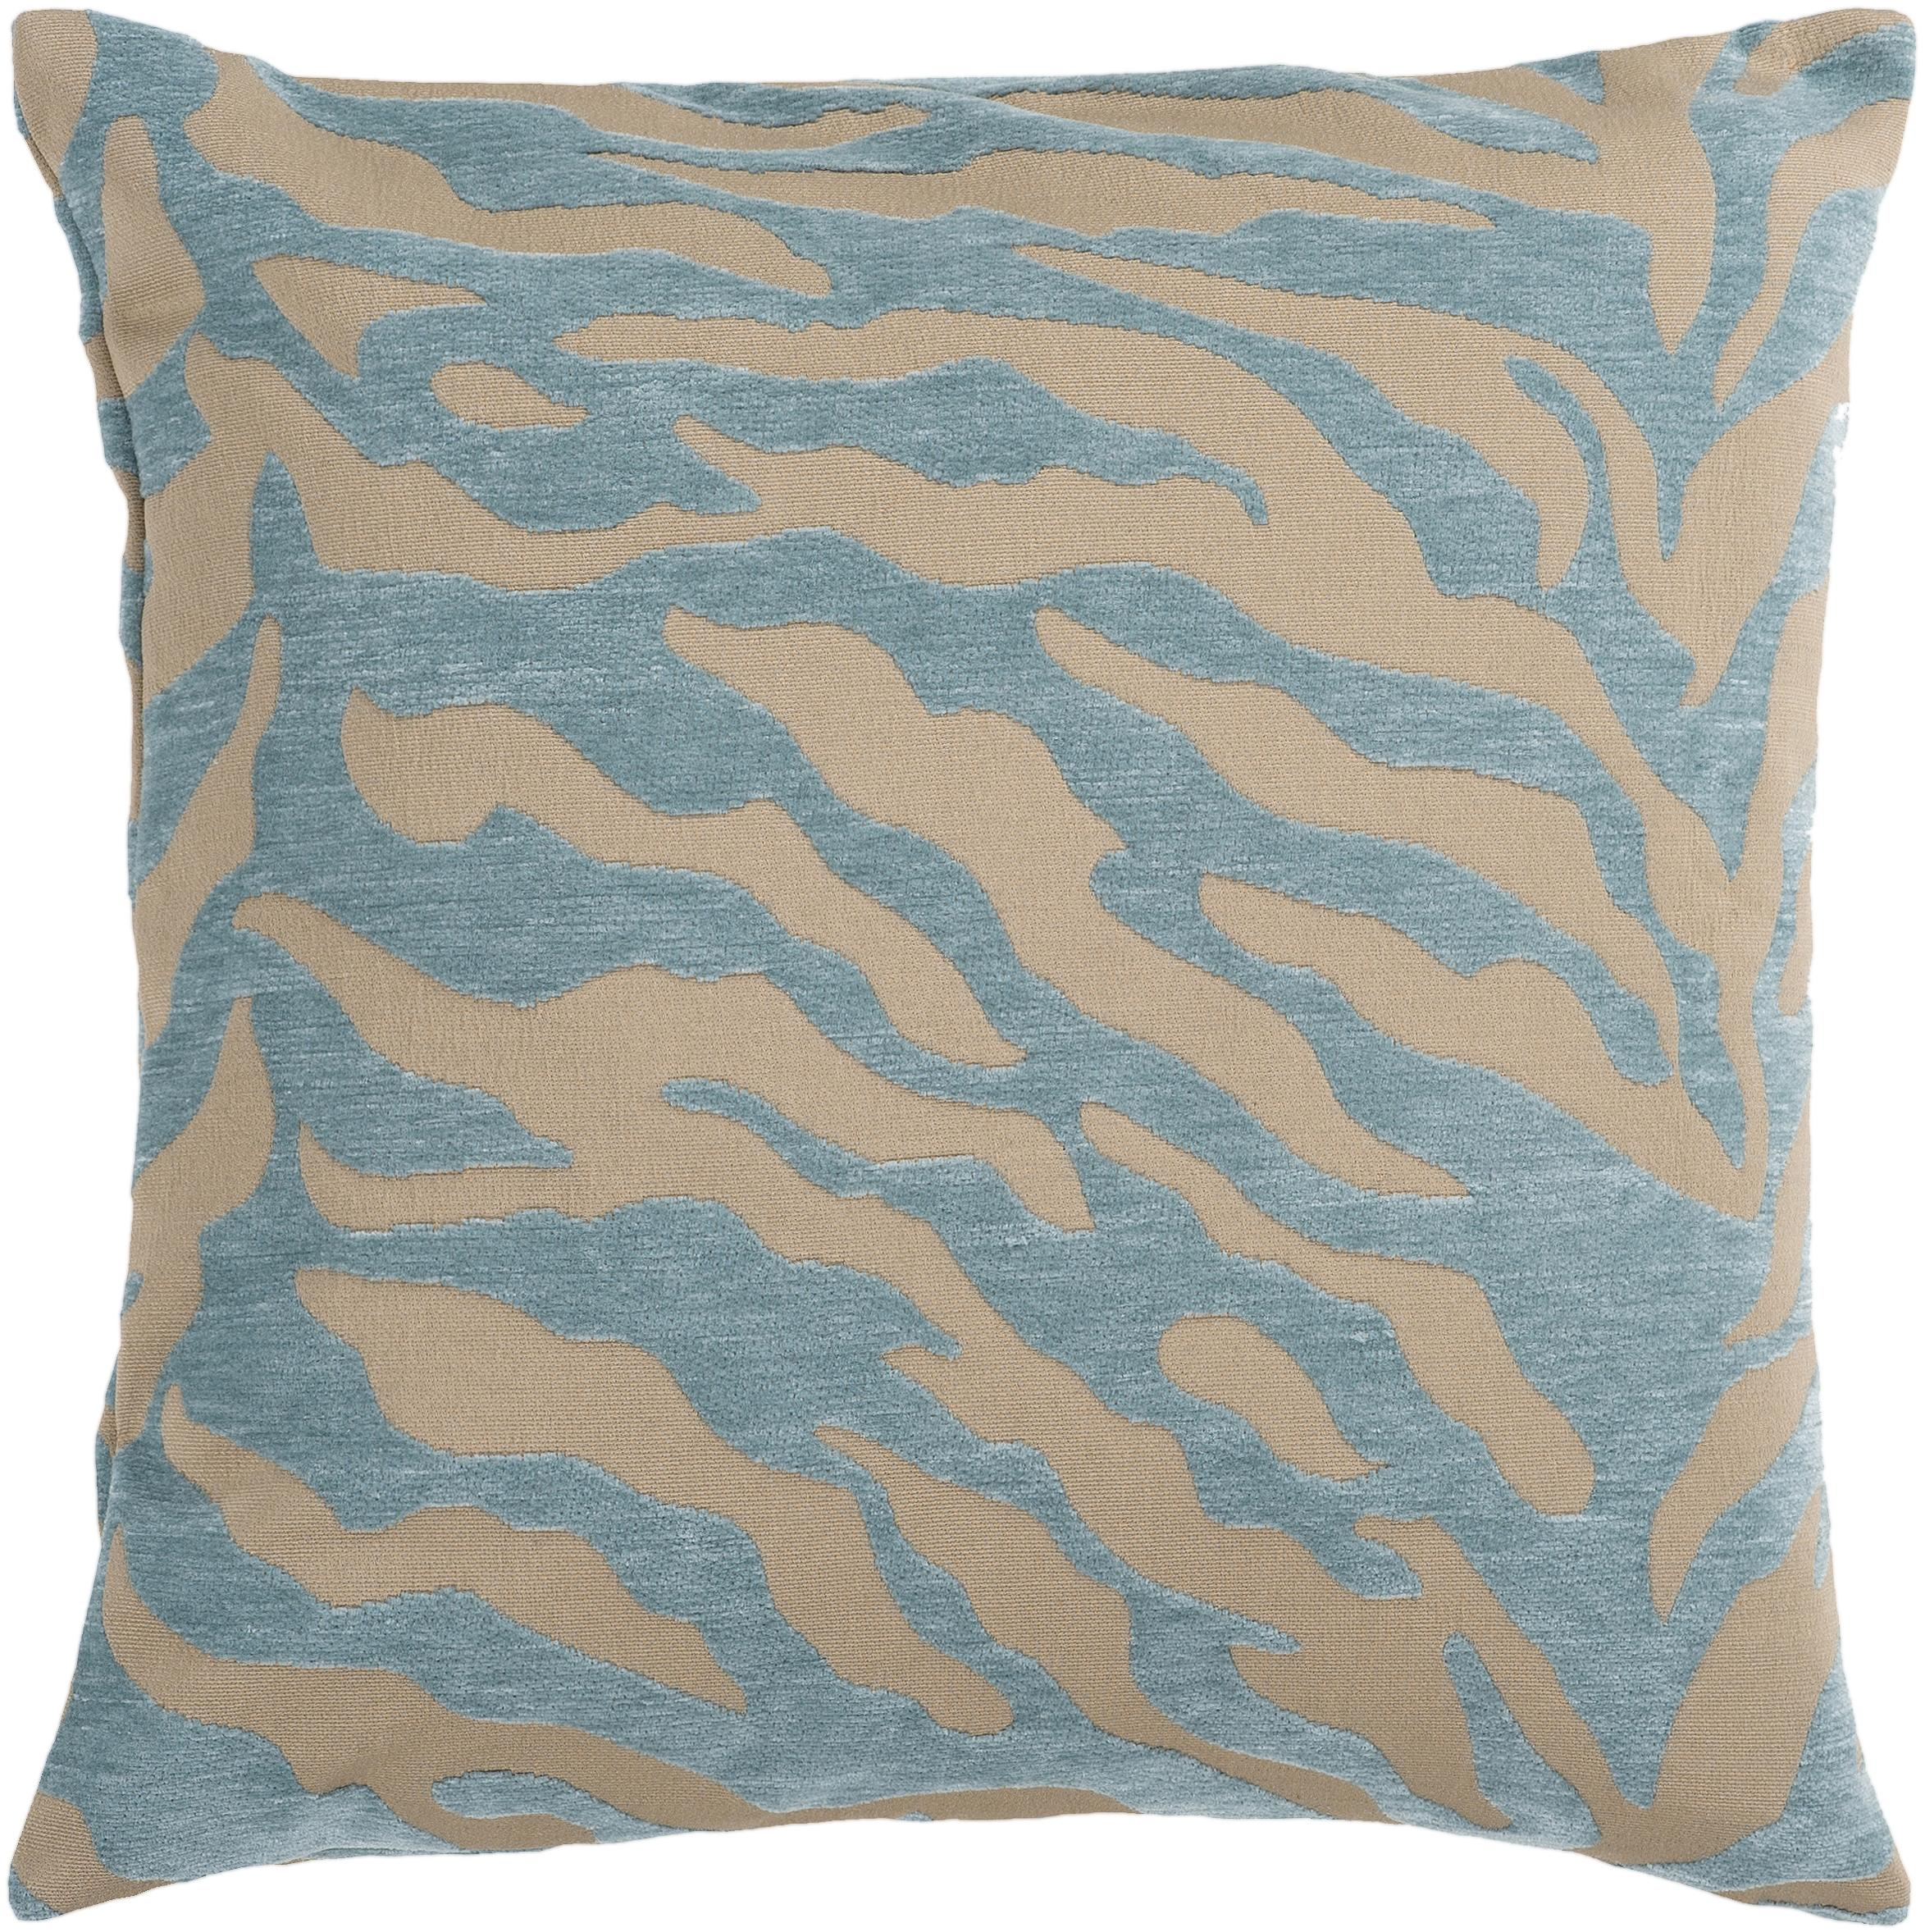 "Surya Rugs Pillows 18"" x 18"" Pillow - Item Number: JS030-1818P"